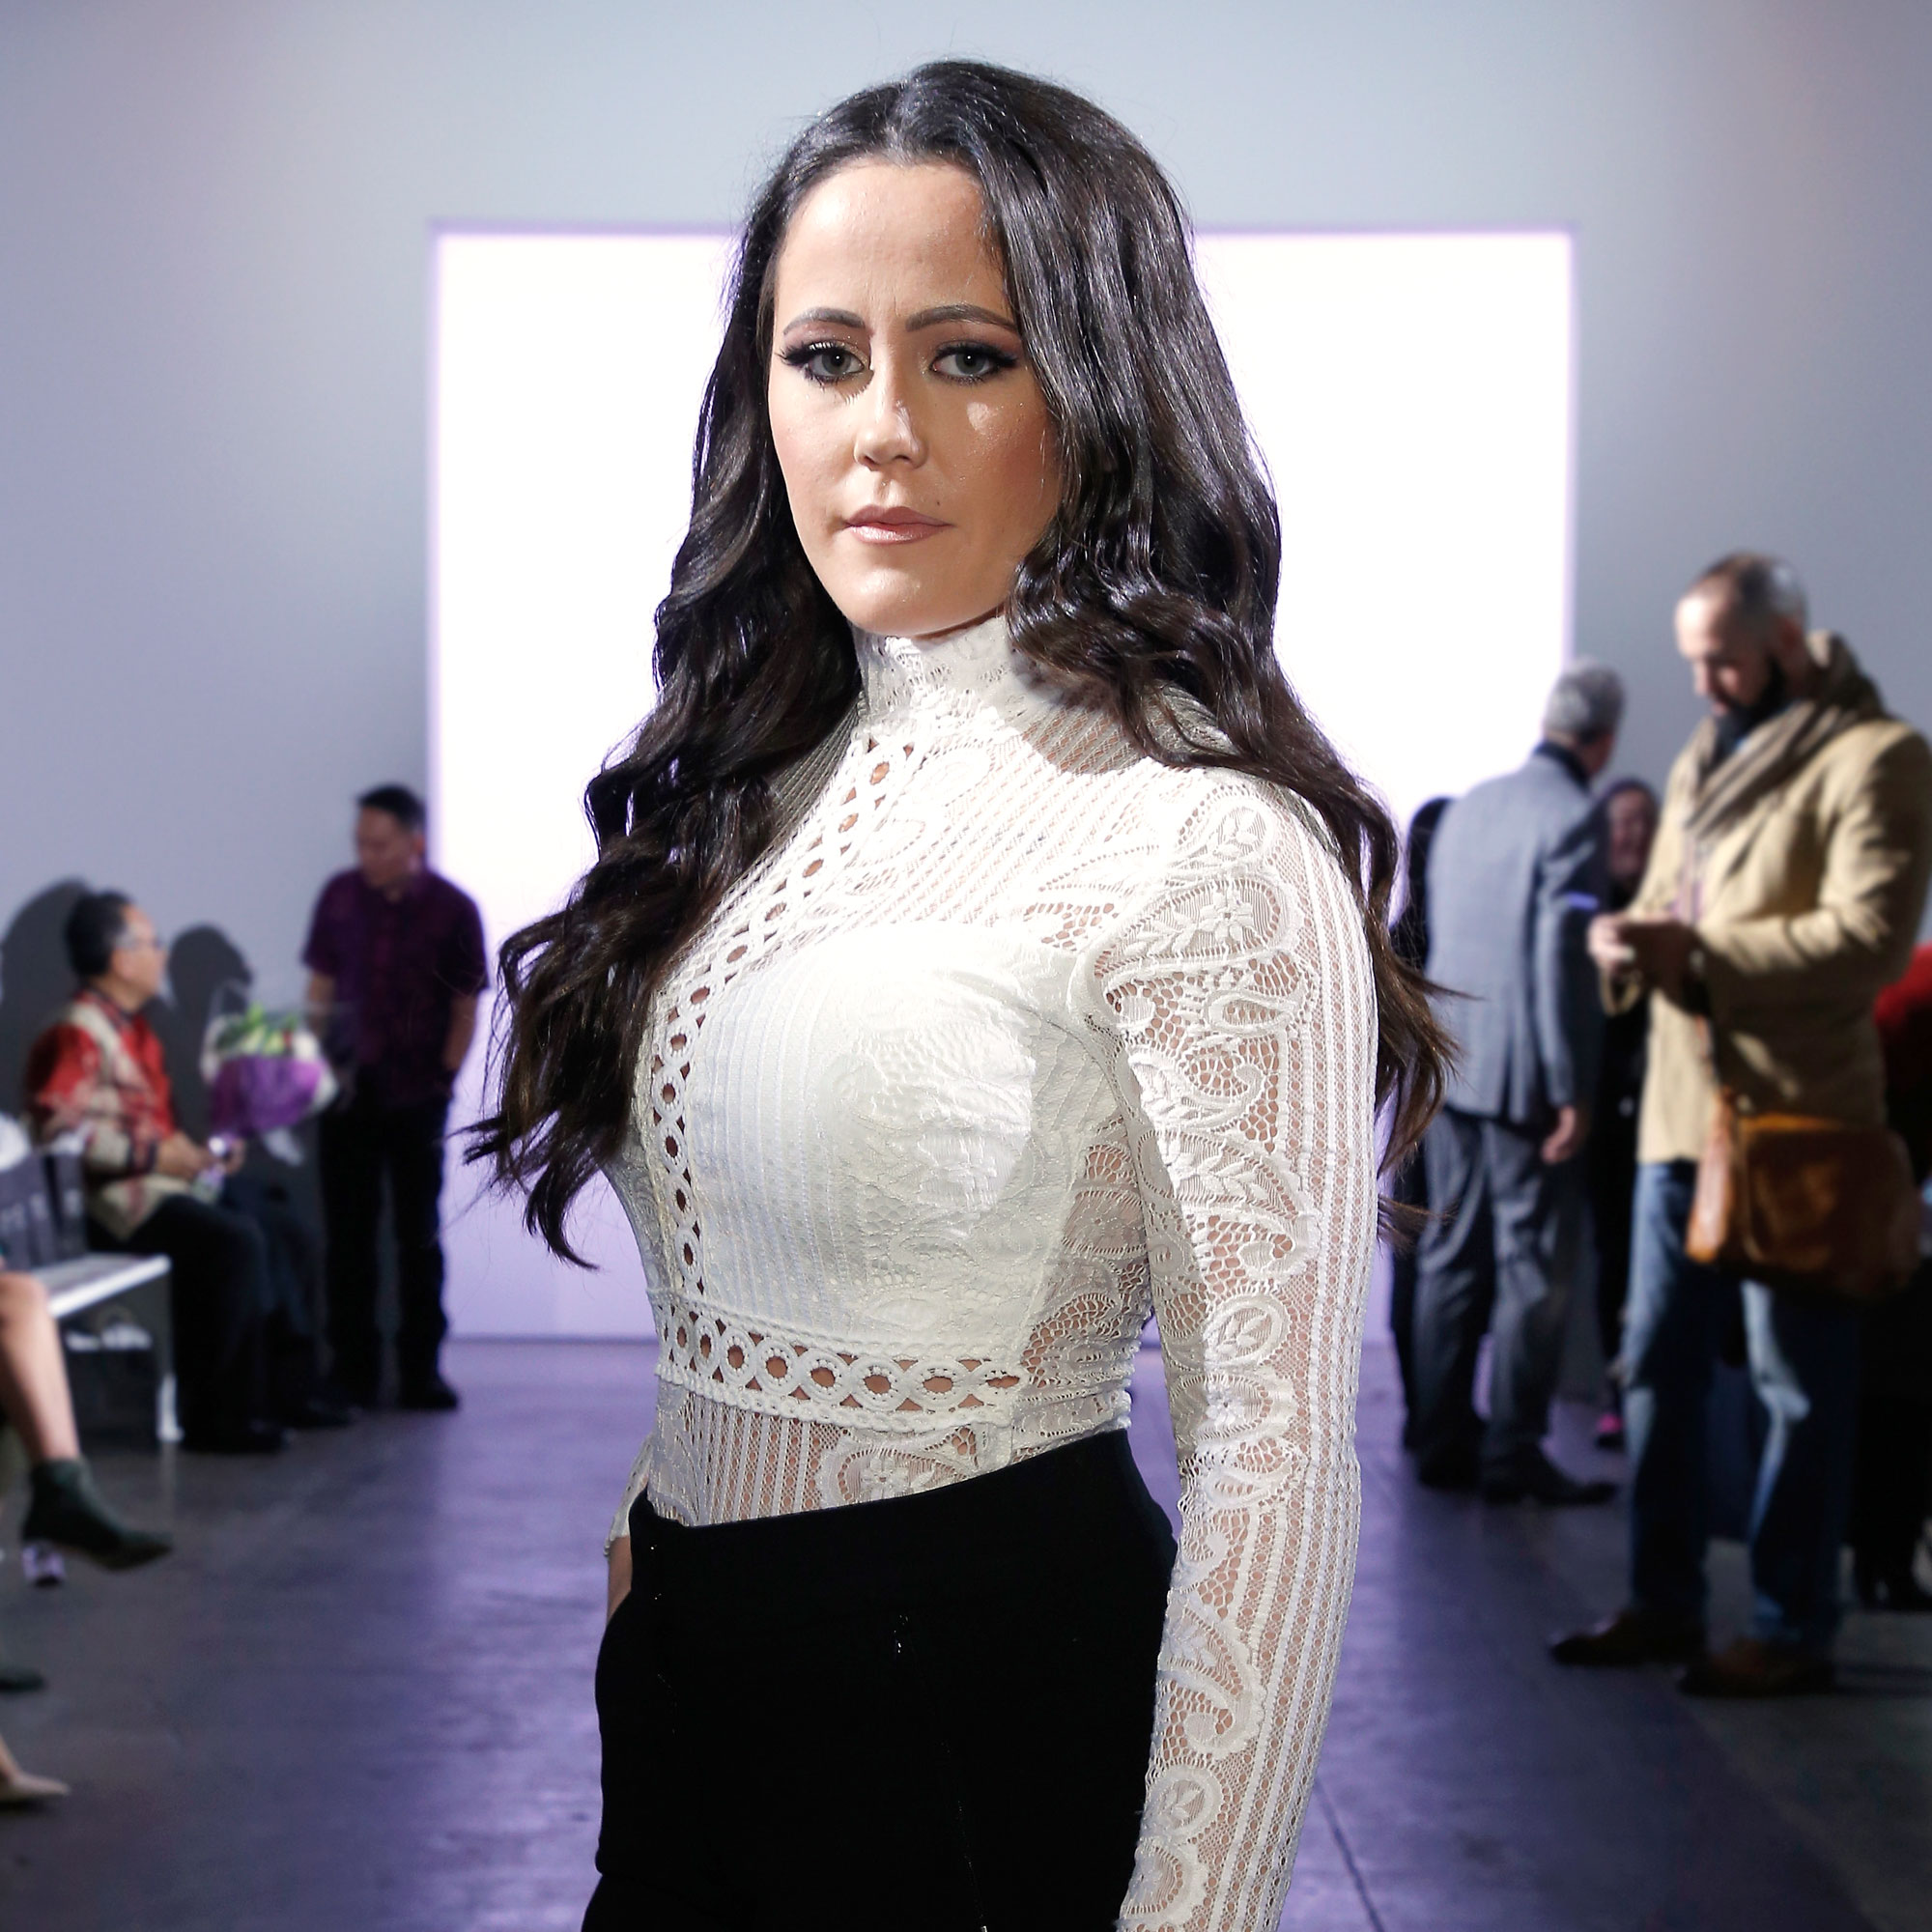 Teen Mom 2's Jenelle Evans Had an Ovary Removed - Jenelle Evans attends the Indonesian Diversity FW19 Collections: 2Madison Avenue, Alleira Batik, Dian Pelangi and Itang Yunas front row during New York Fashion Week: The Shows at Industria Studios on February 7, 2019 in New York City.